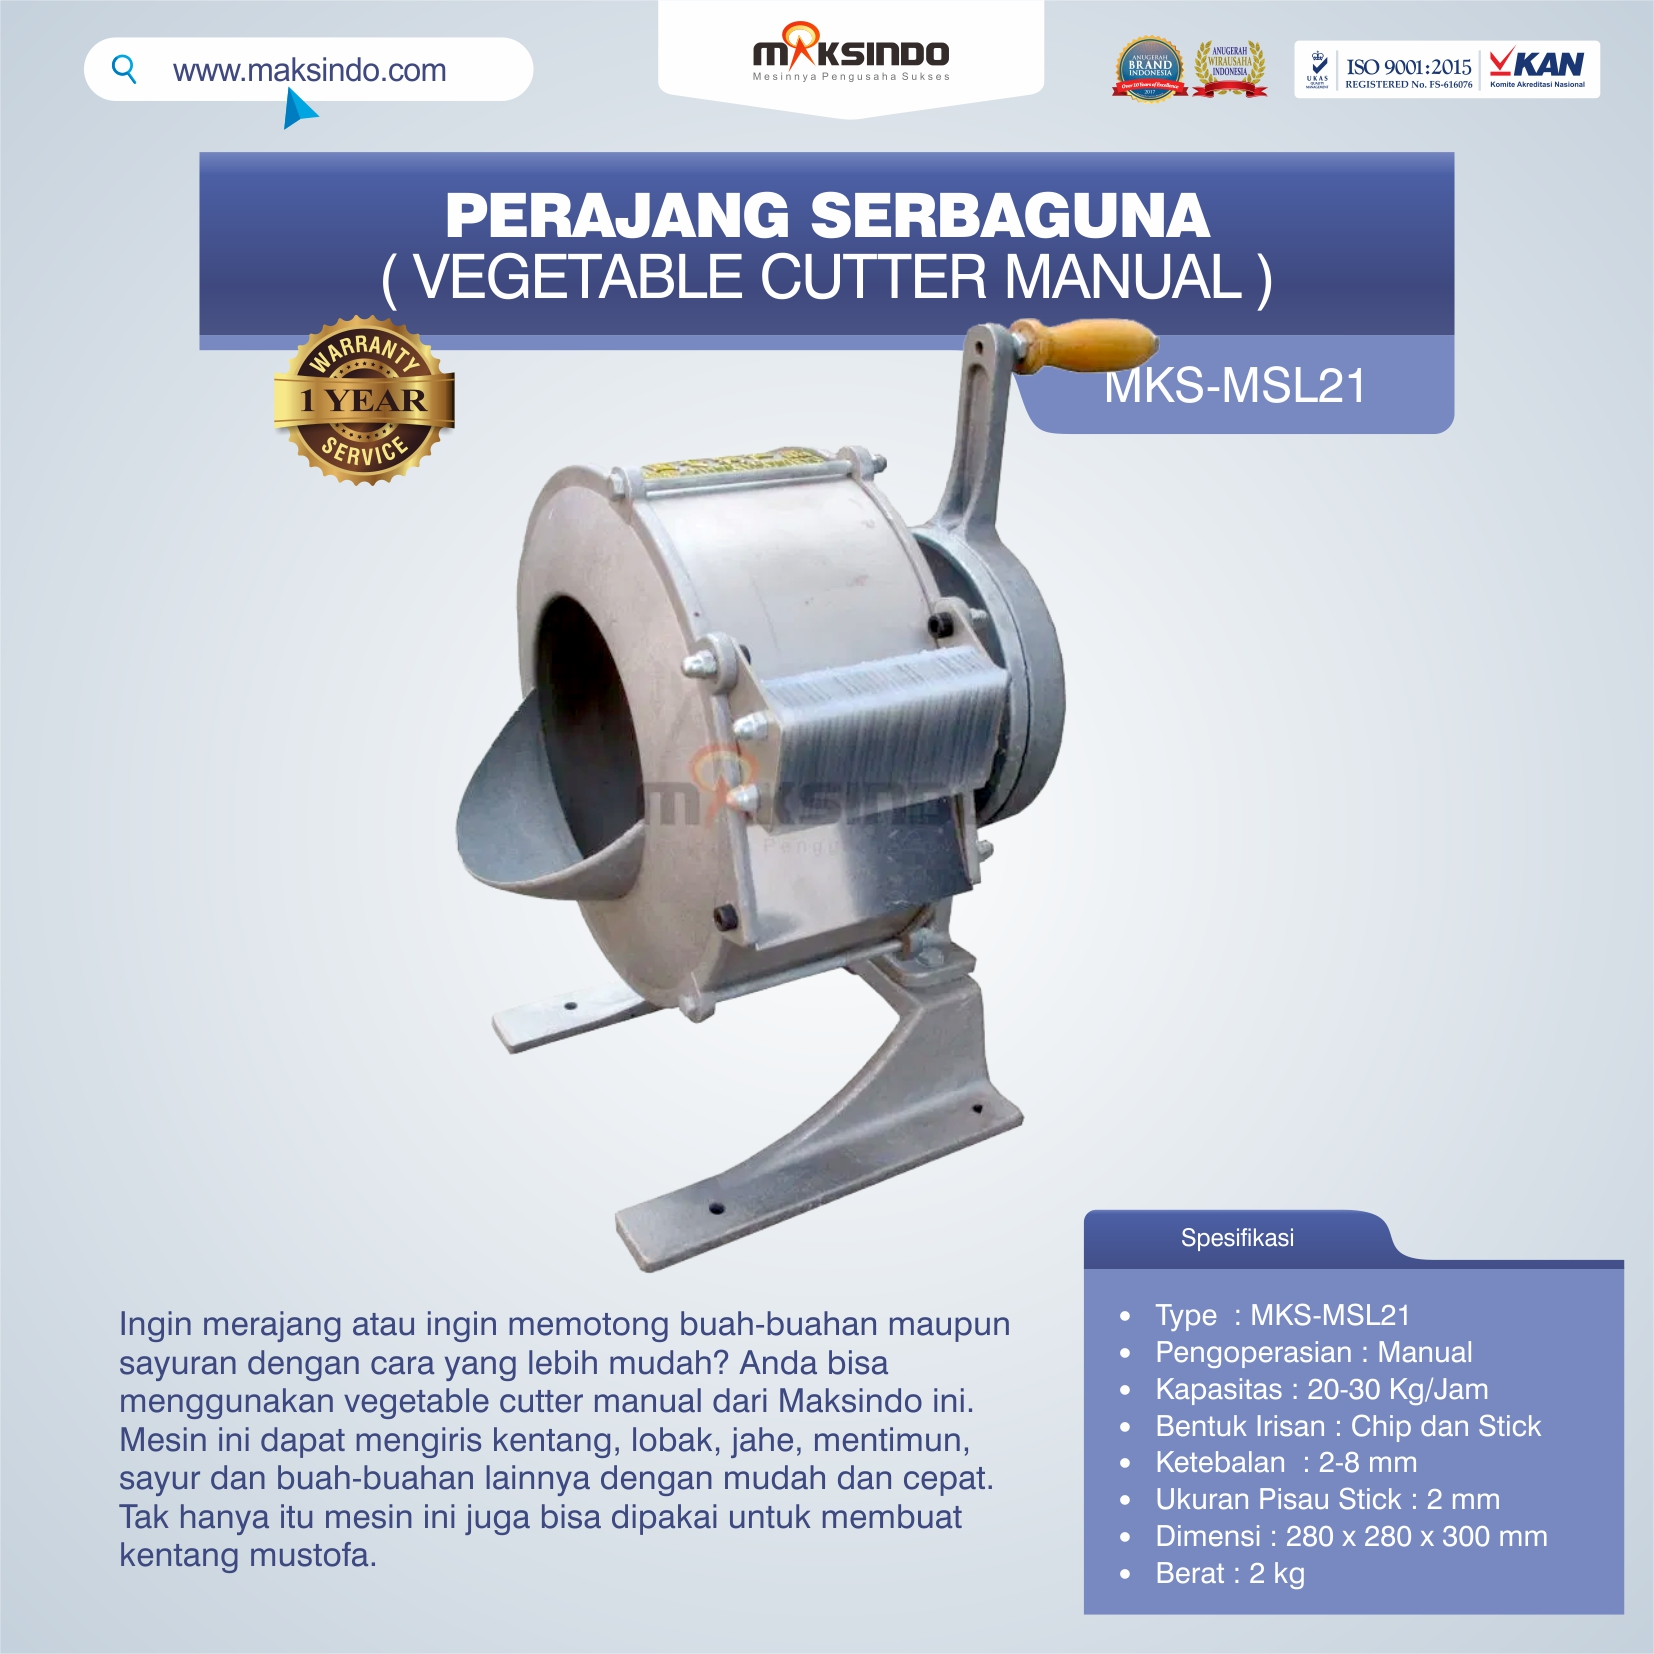 Jual Vegetable Cutter Manual MKS-MSL21 Di Bogor